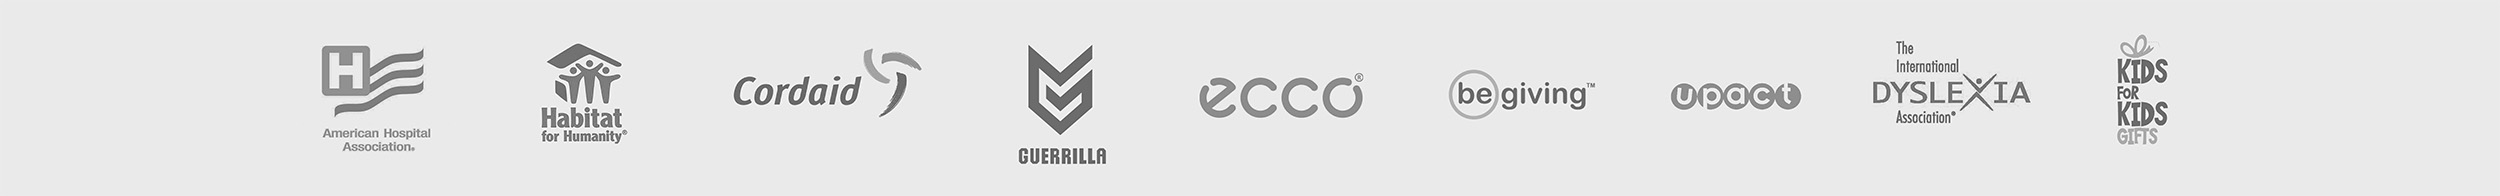 CSR Marketing MVO clients